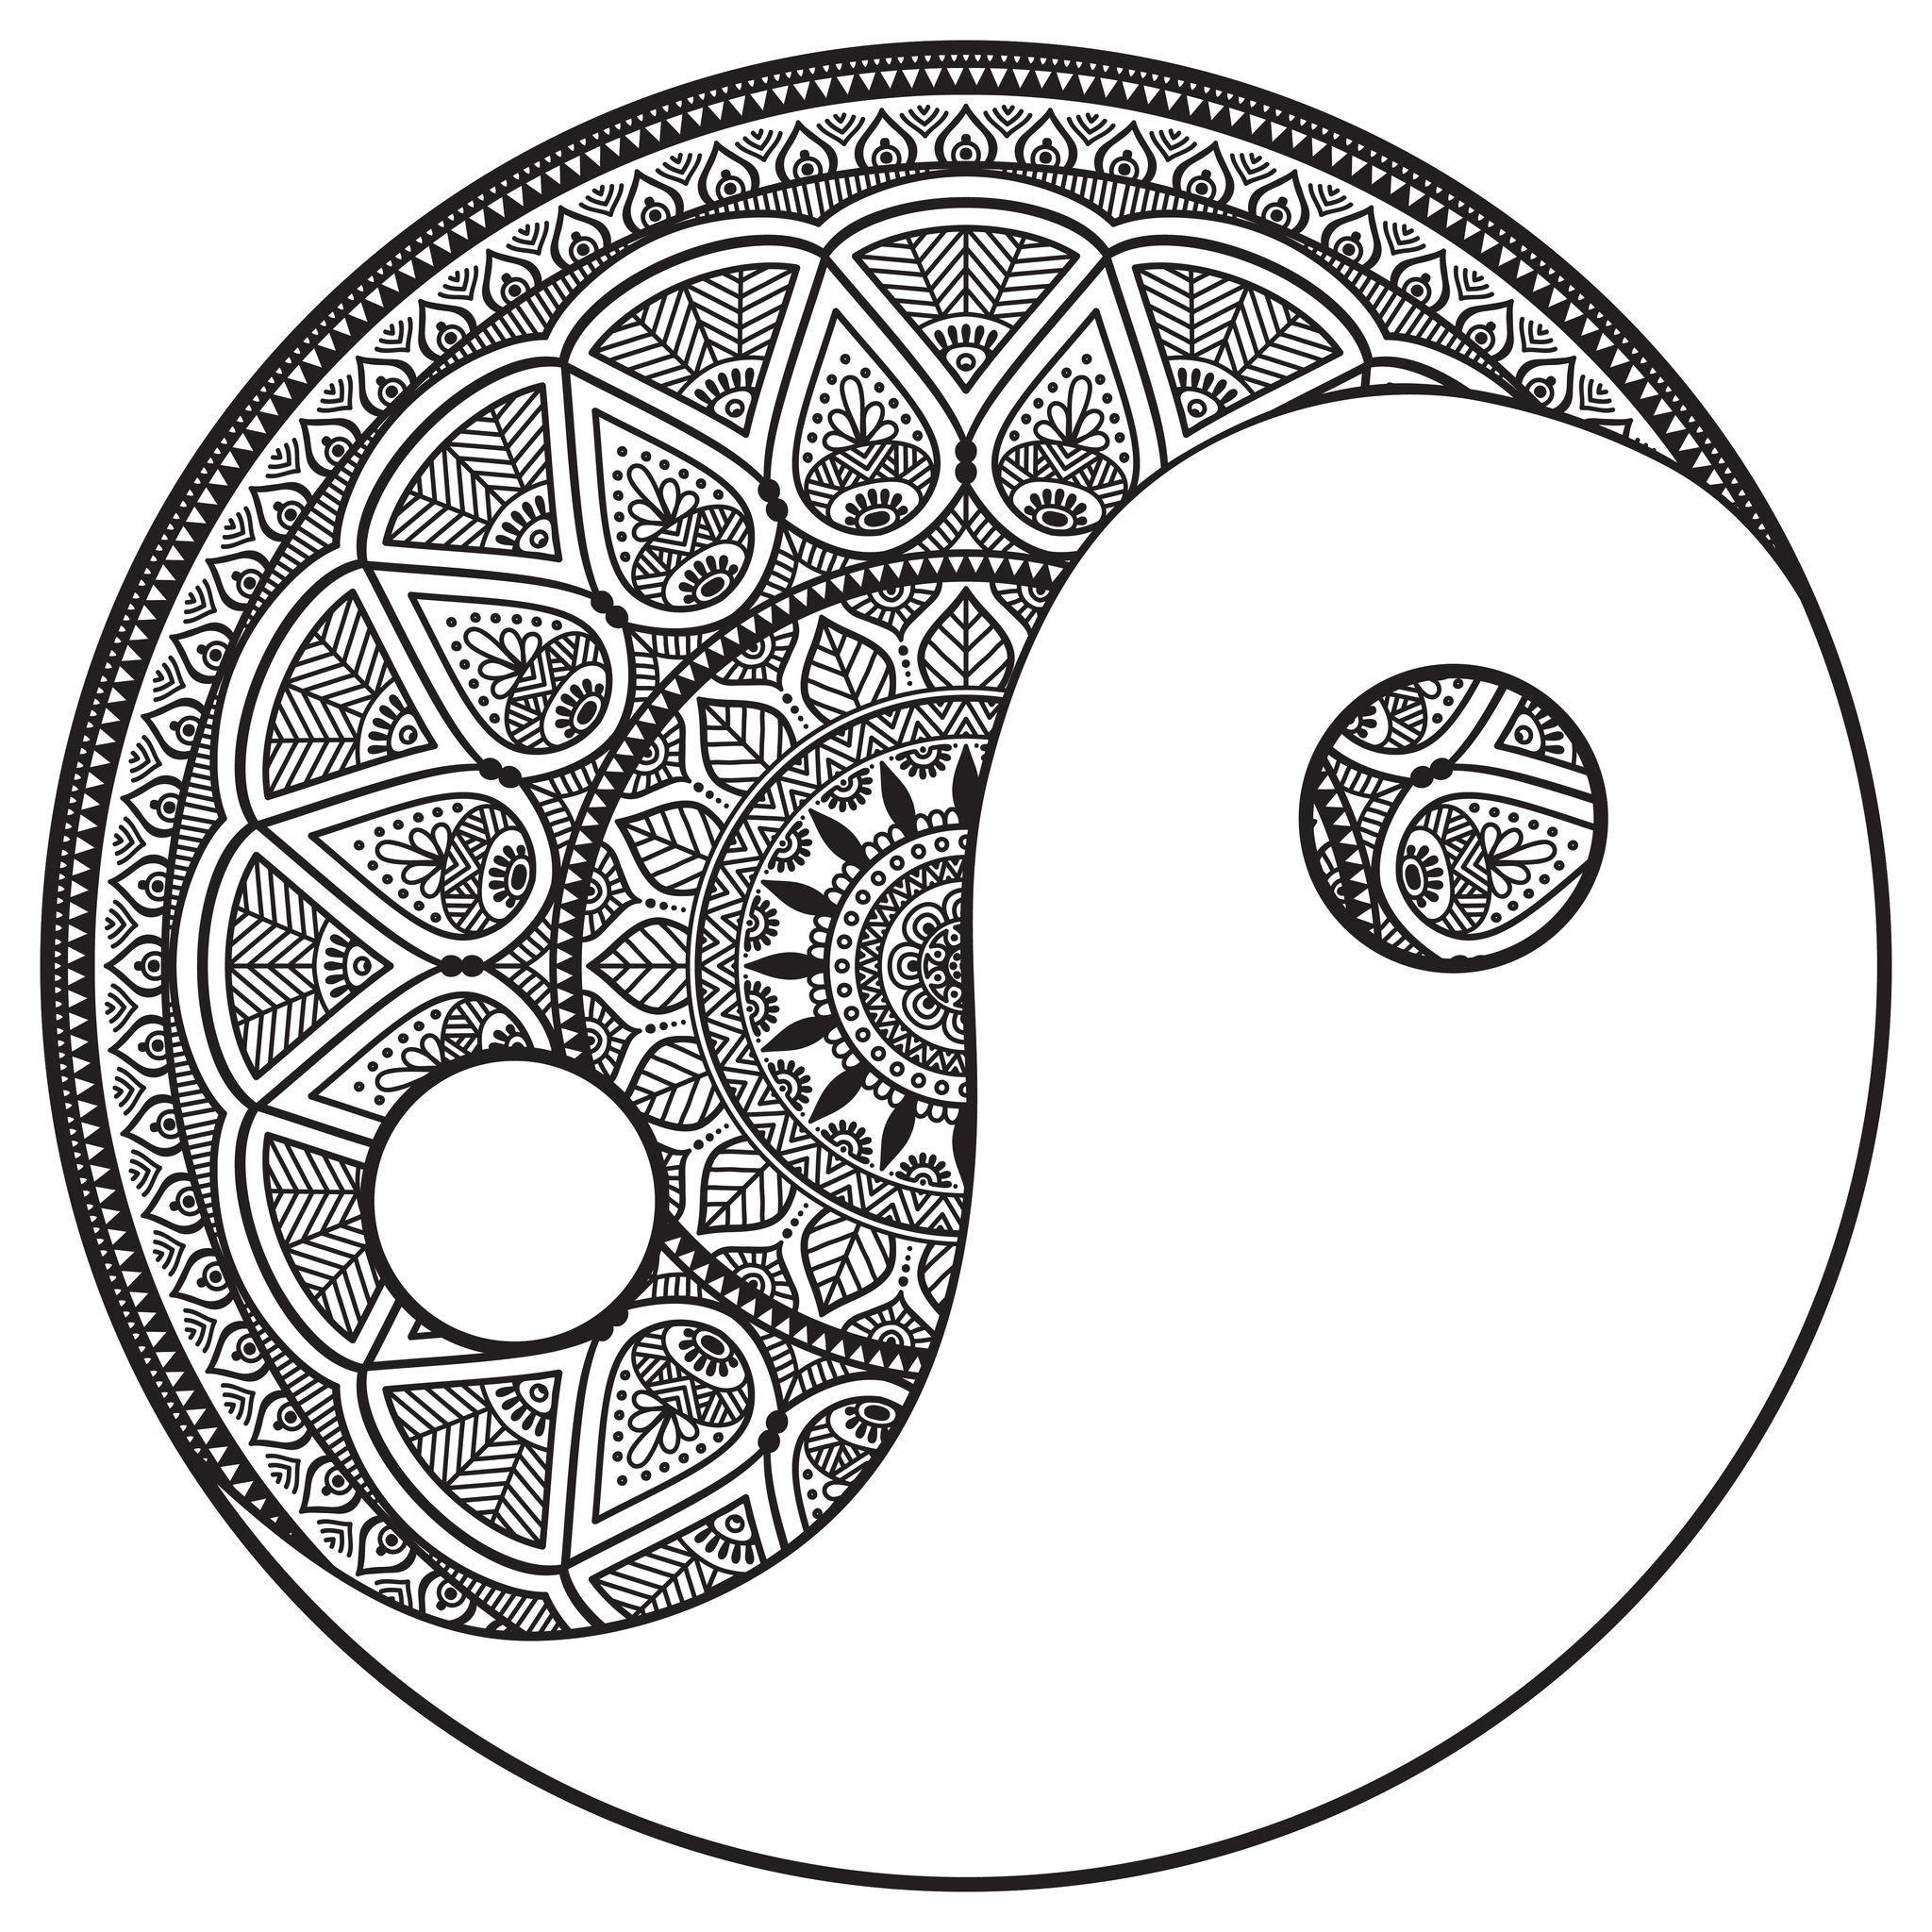 Mandala Yin and Yang to color - M&alas Adult Coloring Pages